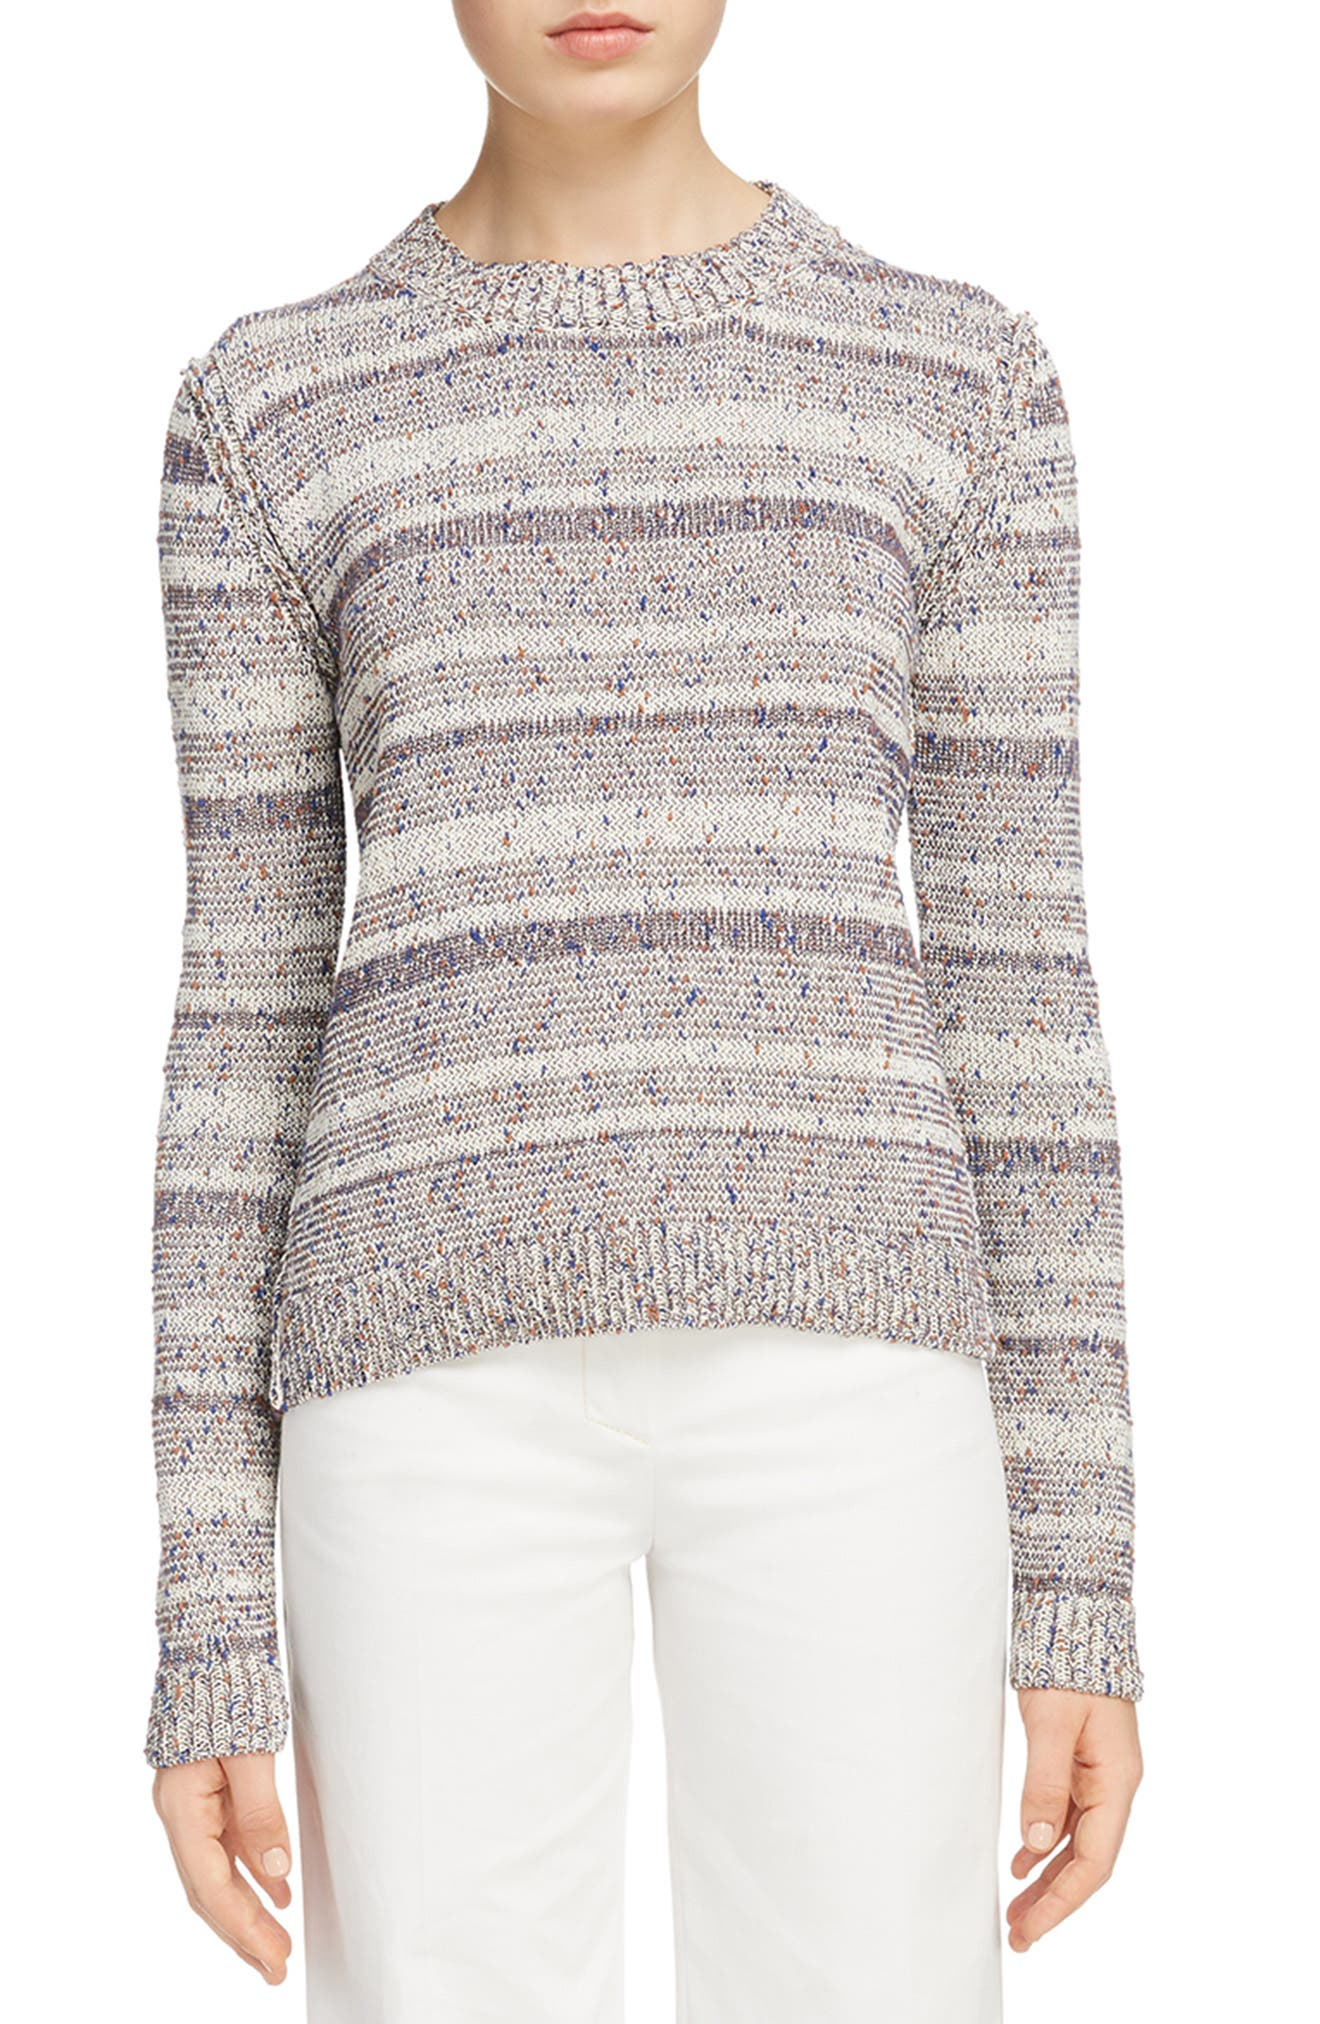 Acne Studios Getik Romantic Sweater